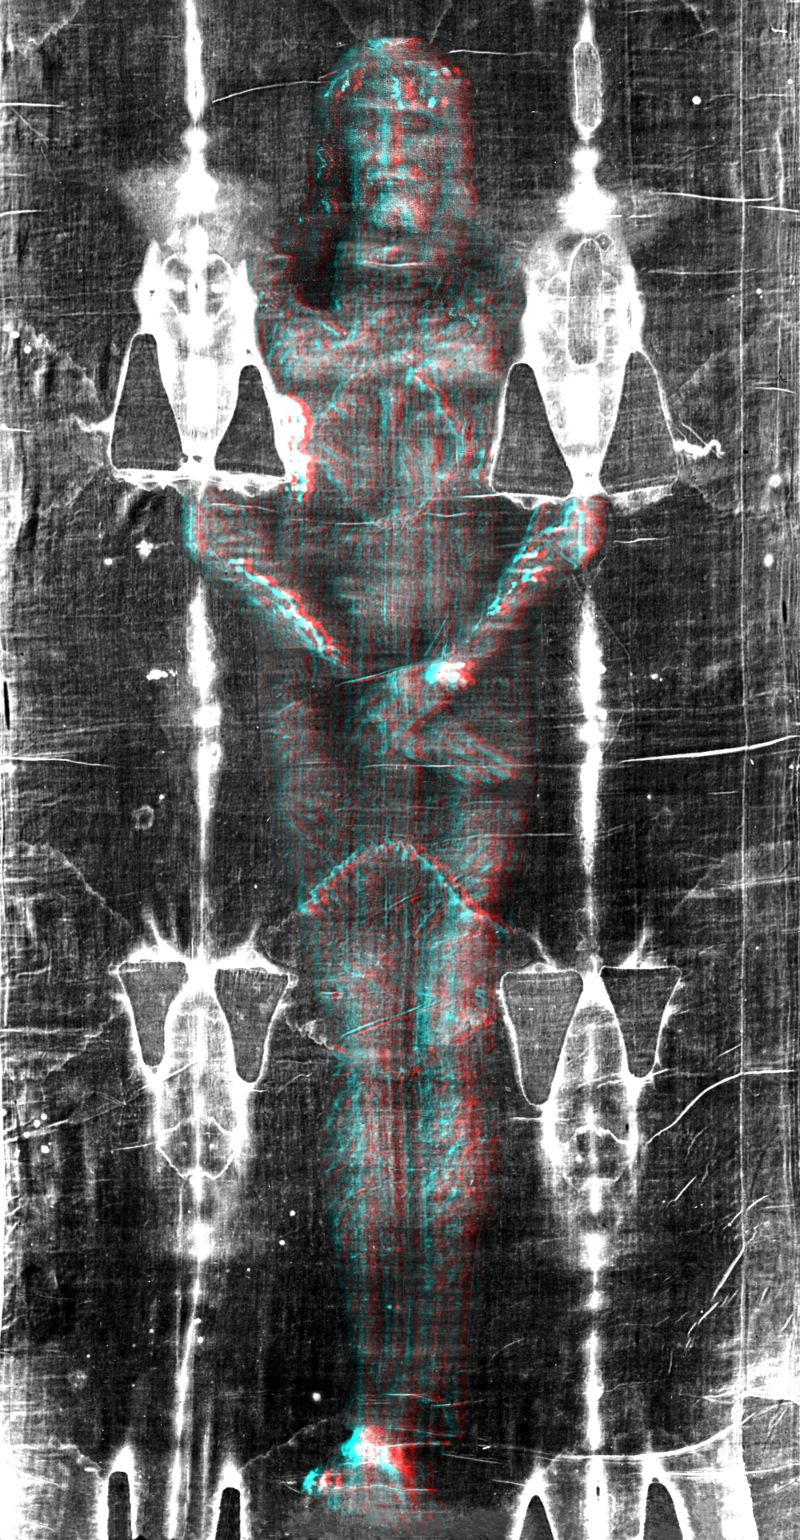 Photo 3. Photo Body front. Use REVERSED 3D glasses